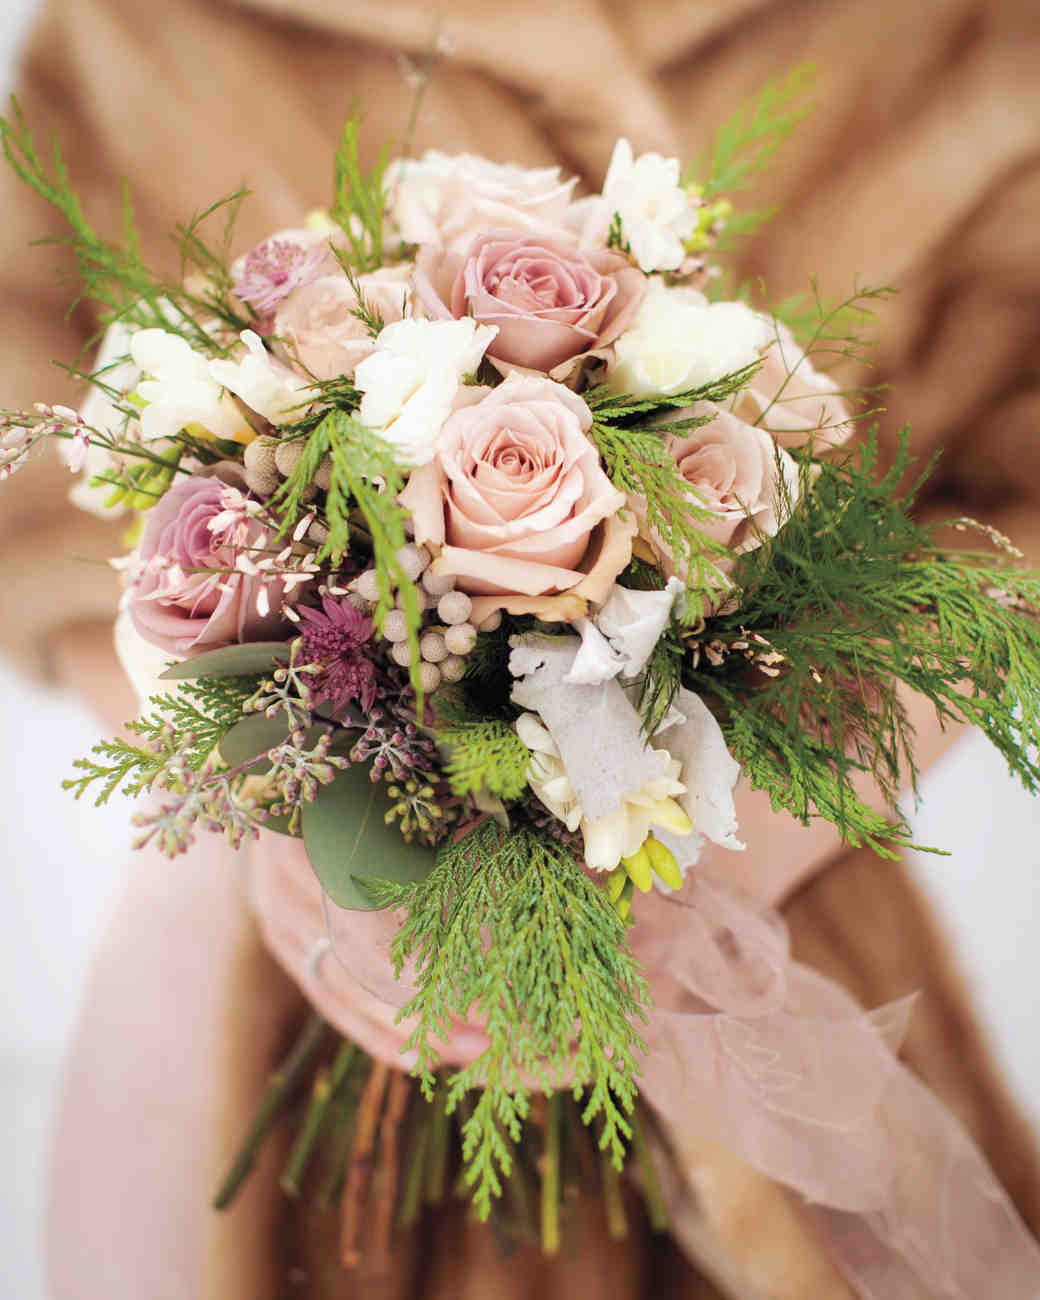 Ideas For Wedding Flower Arrangements: Pretty In Pink Wedding Bouquet Ideas